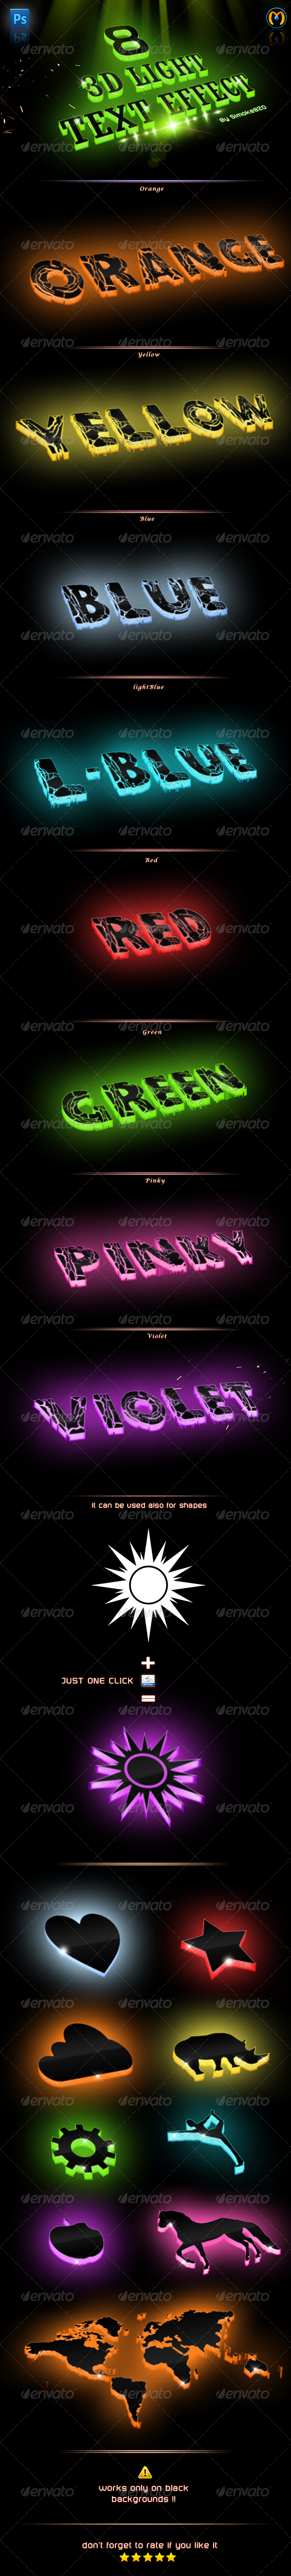 3D Light Text Photoshop Action - Text Effects Actions